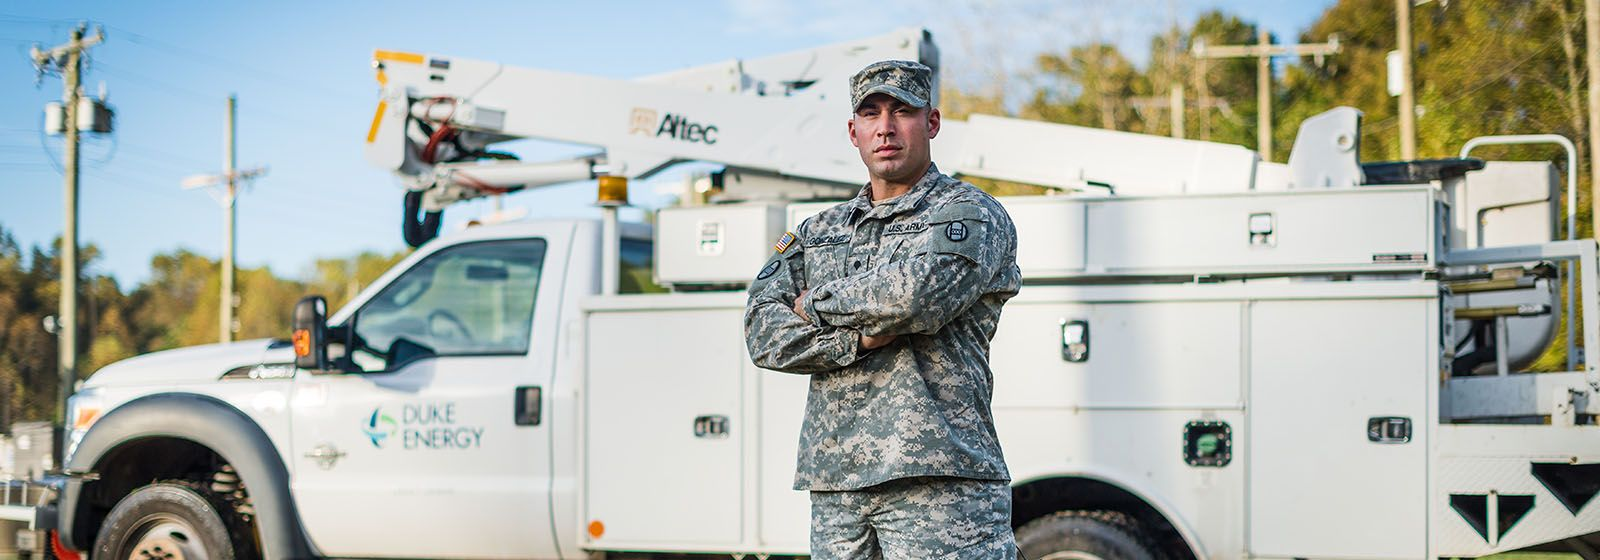 Why Duke Energy wants veterans for lineman positions